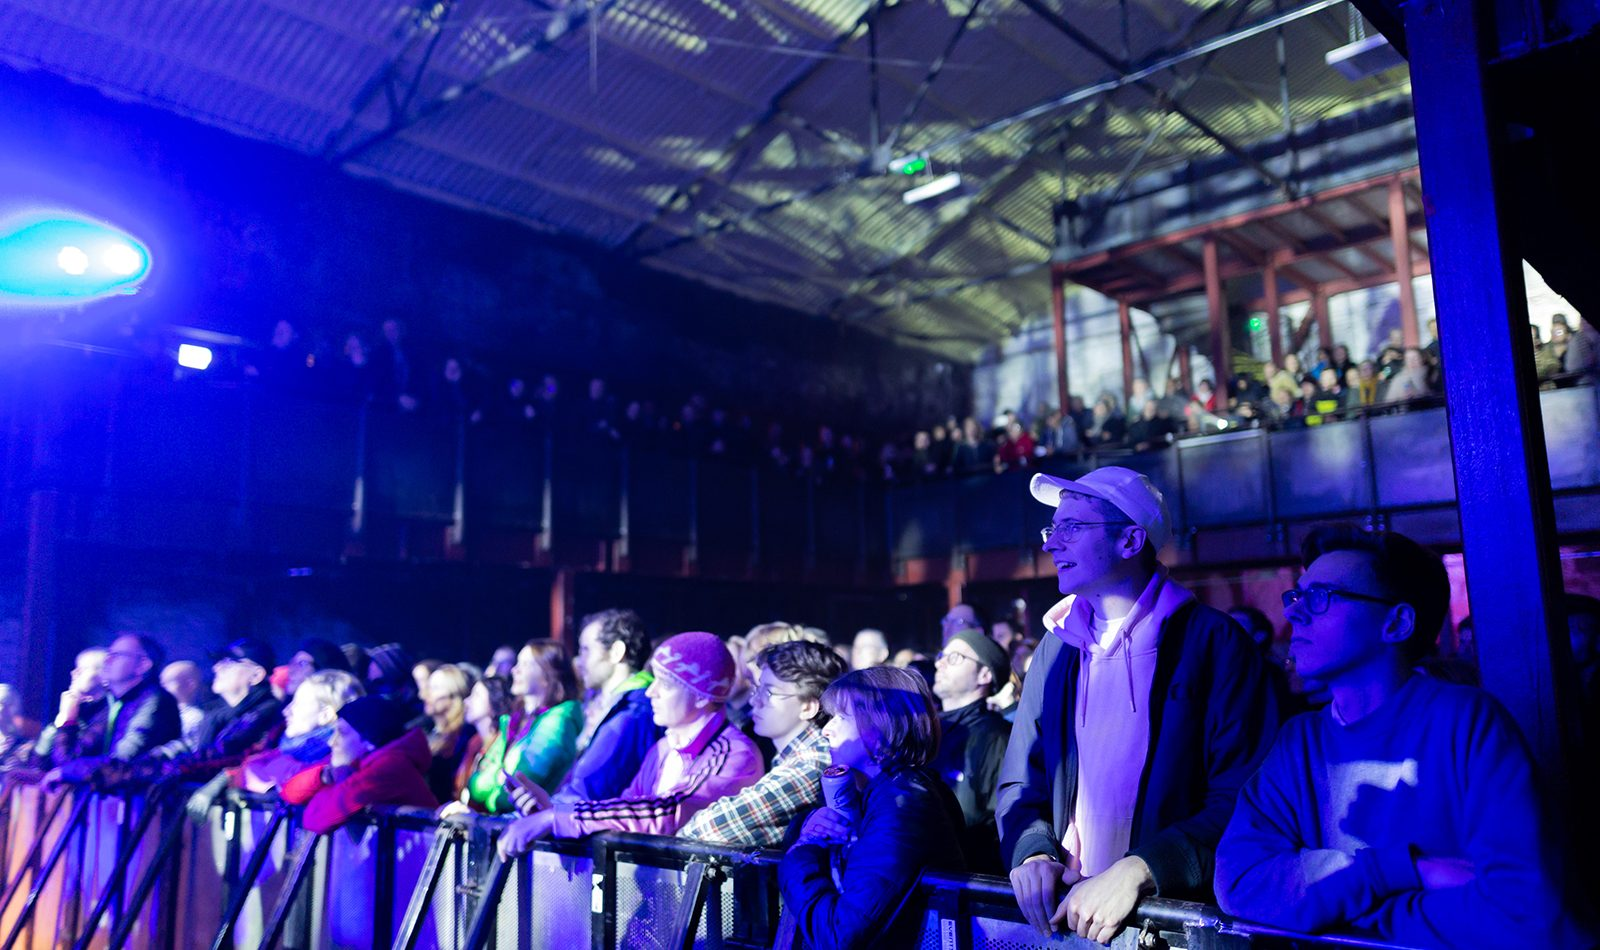 A gig crowd in a warehouse setting, dark, blue lighting, the standing audience watches an unseen stage